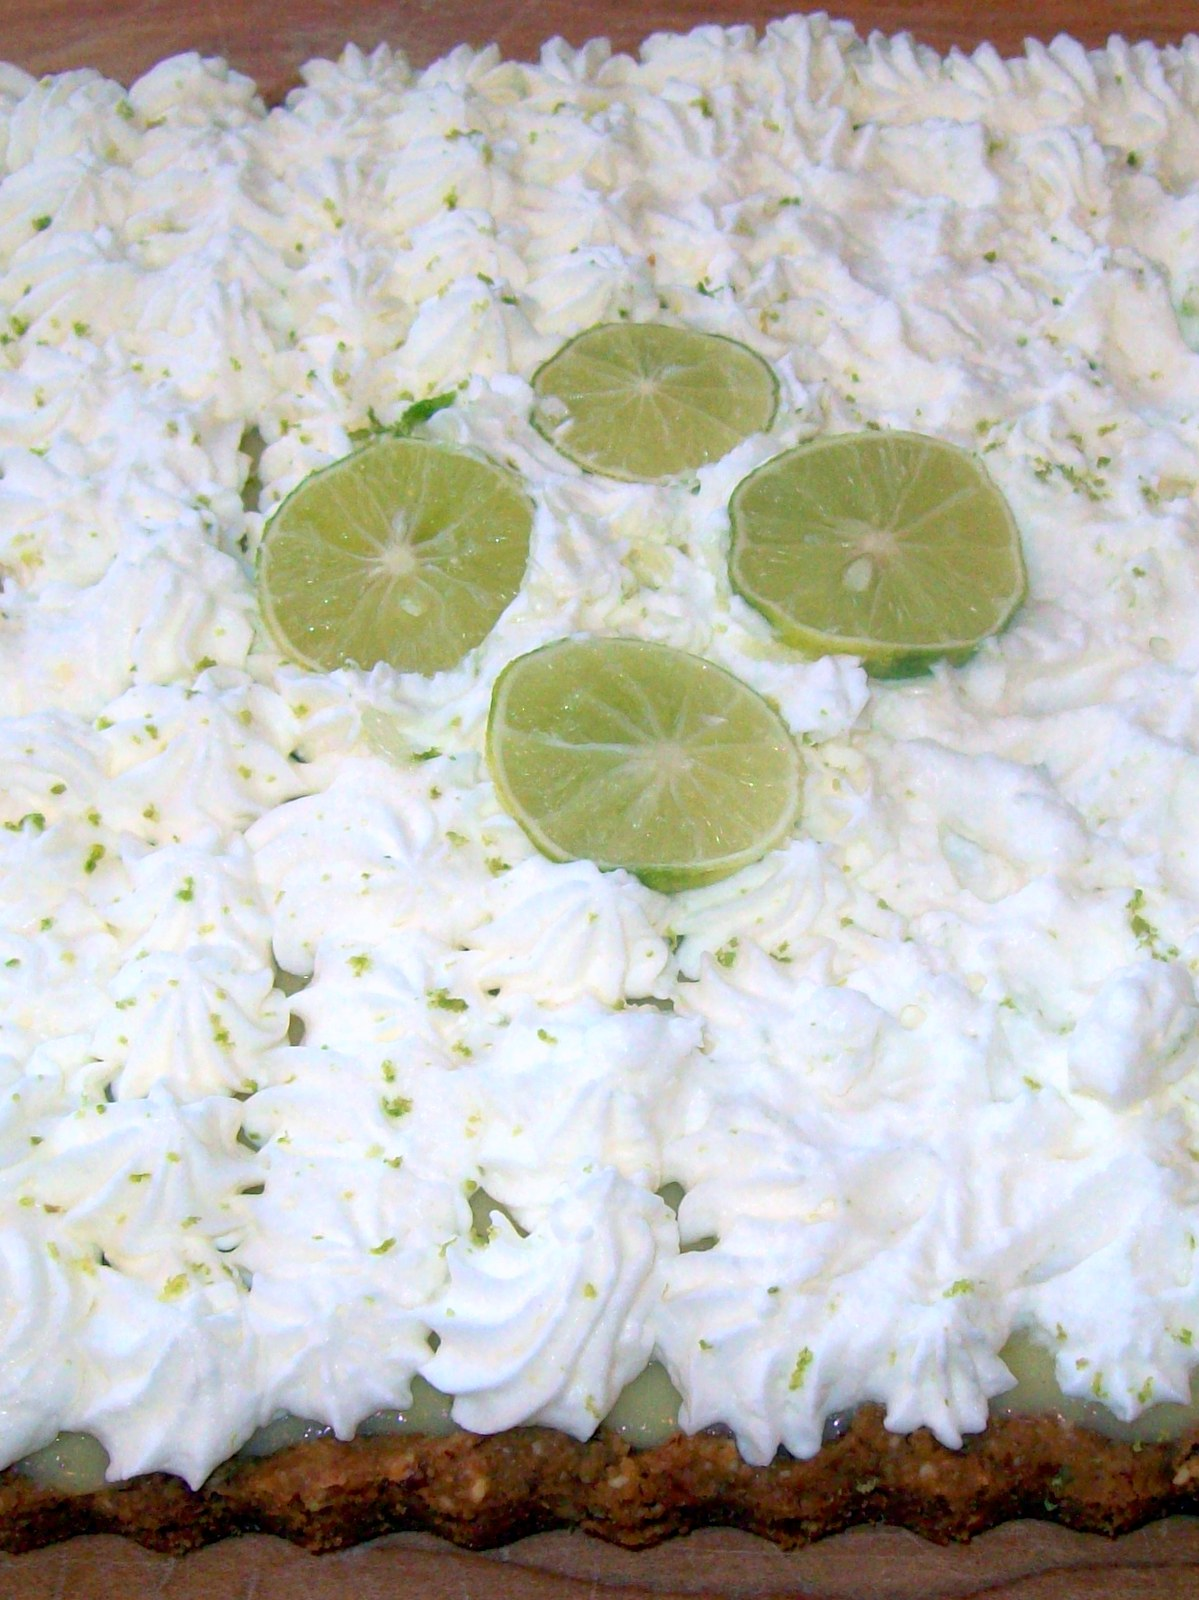 Phoenician's Key Lime Pie Arlette Therese Abdallah